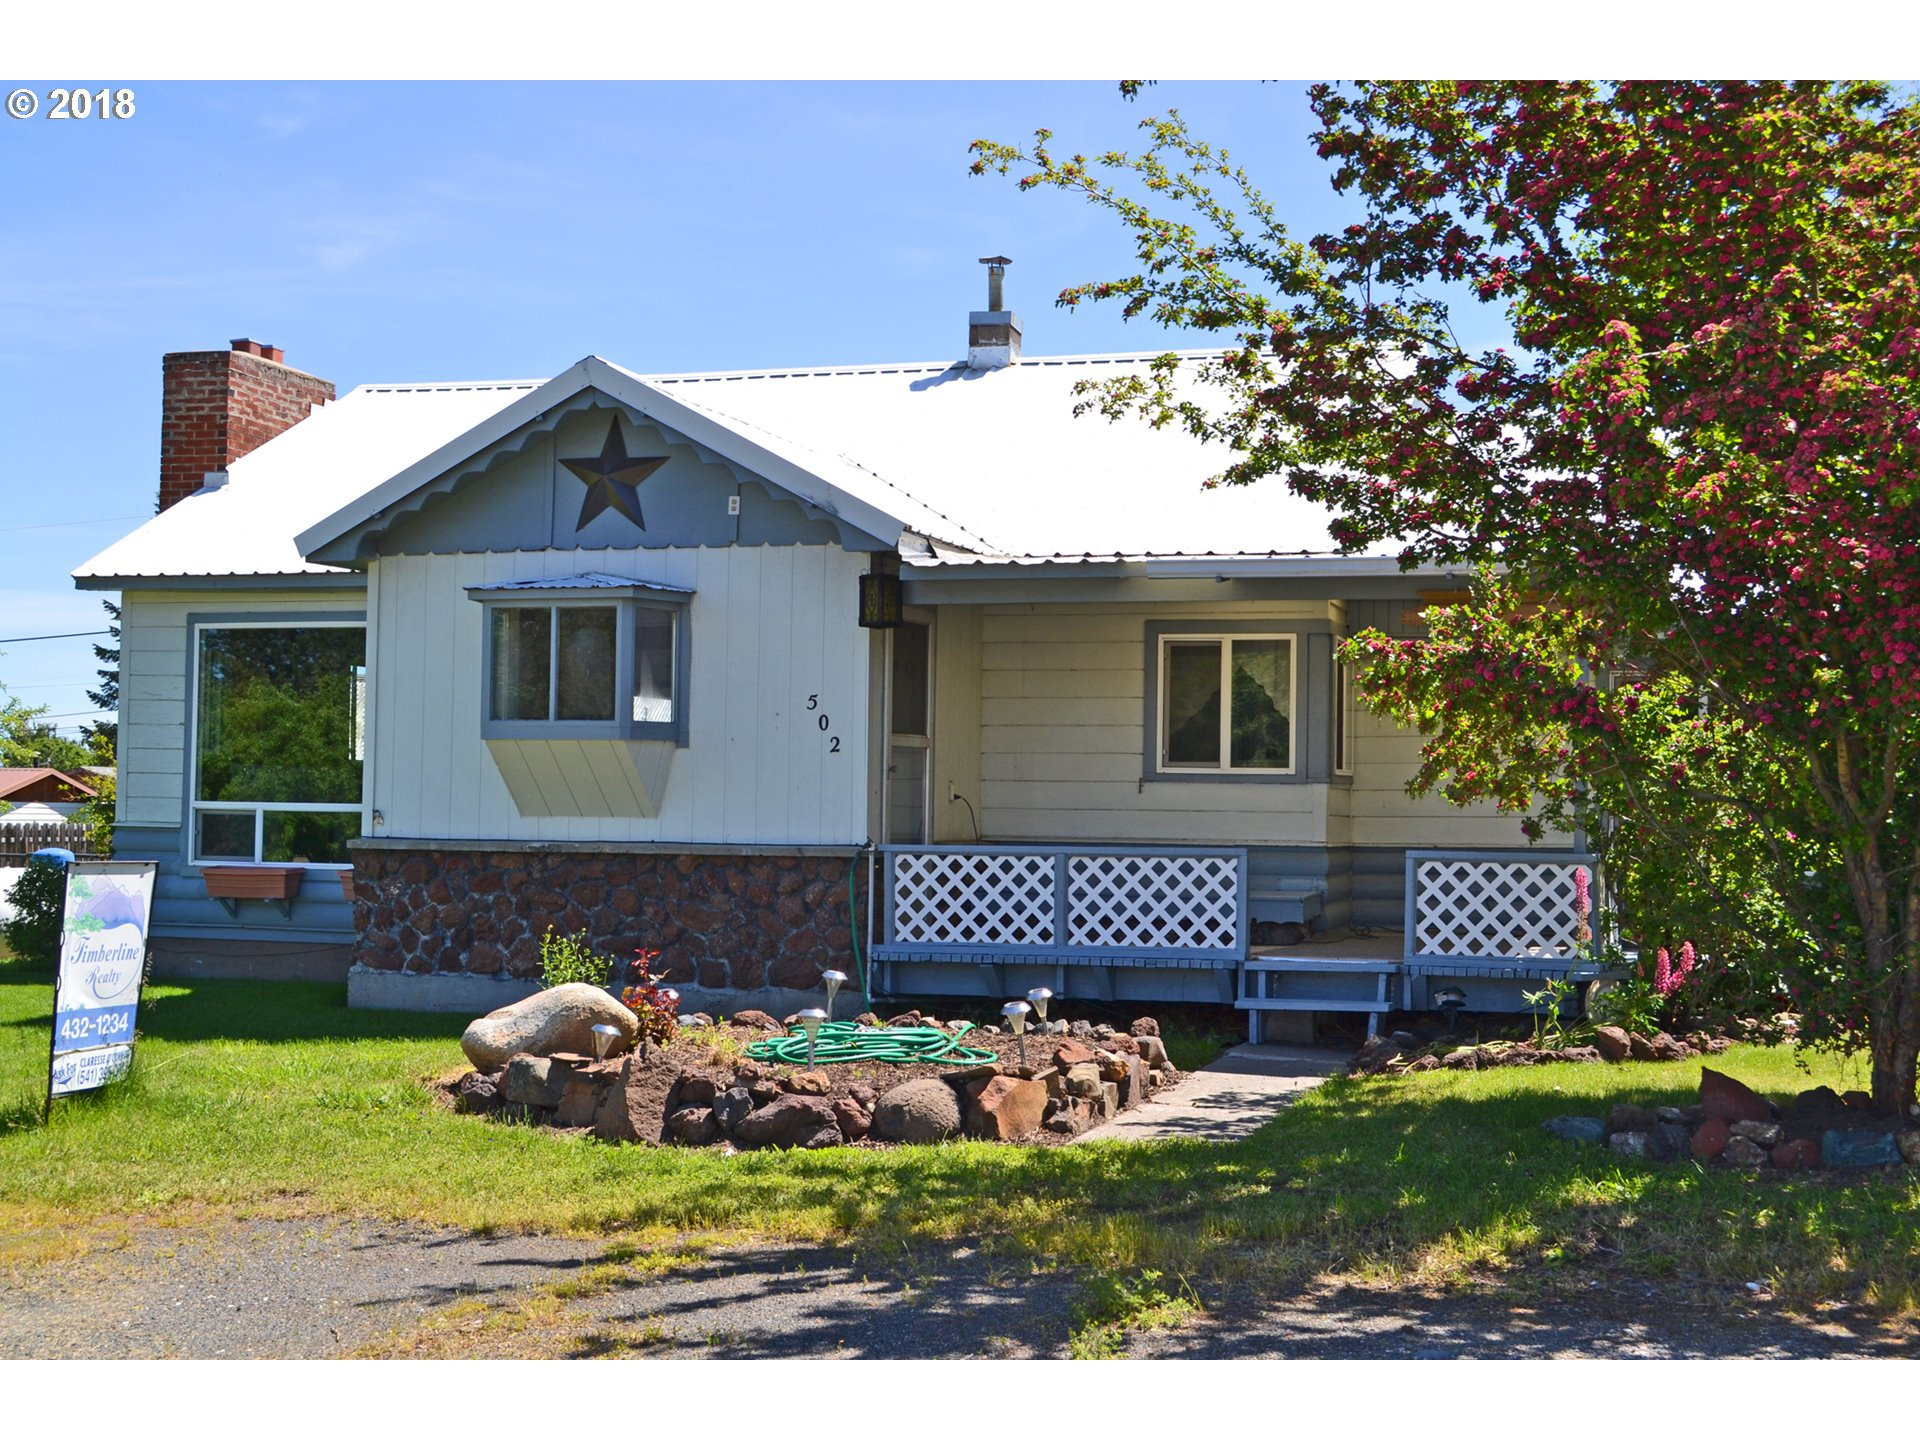 1264 sq. ft 3 bedrooms 1 bathrooms  House For Sale,Joseph, OR